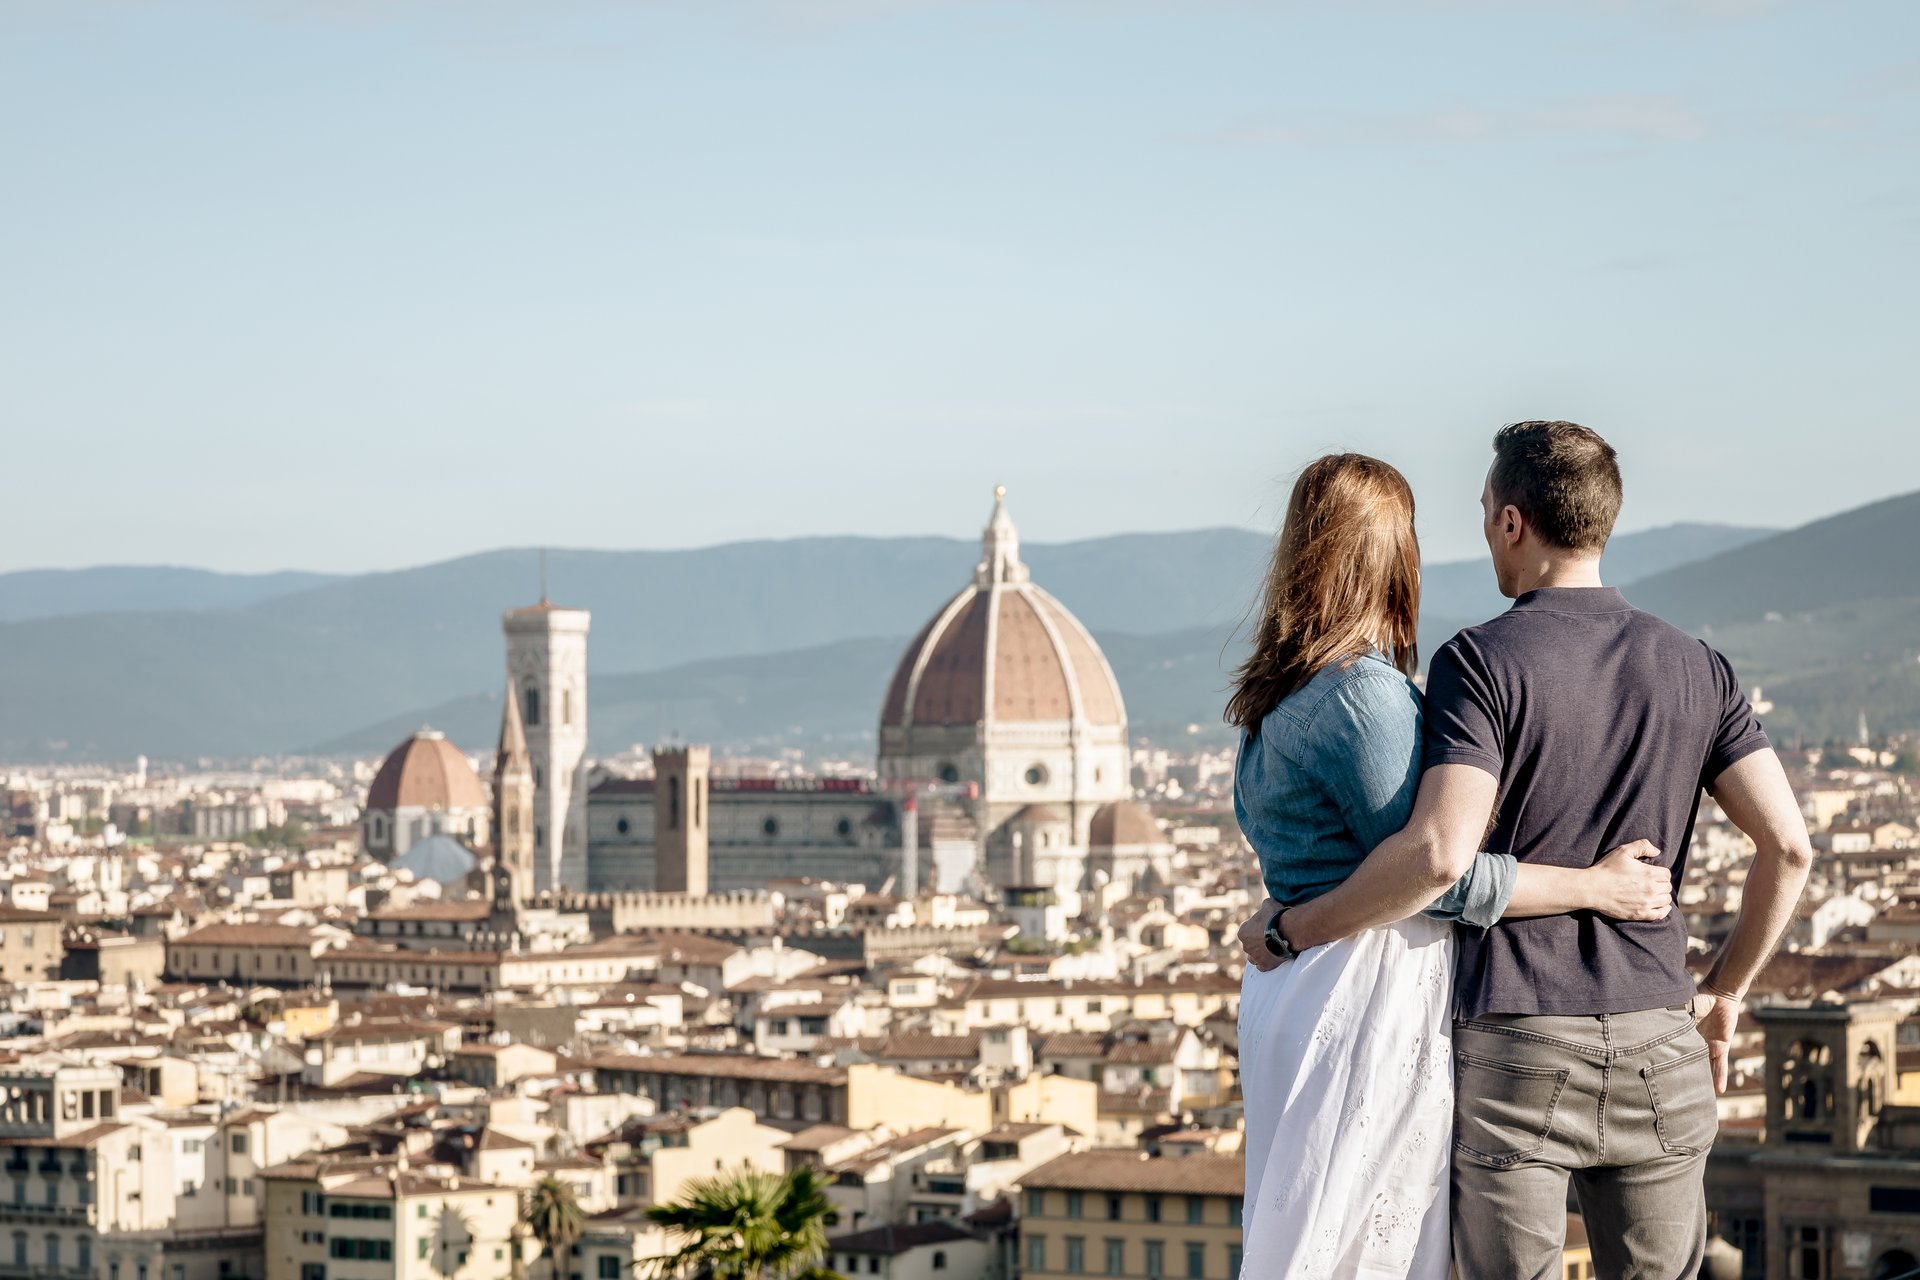 Florence-Italy-travel-story-Flytographer-4